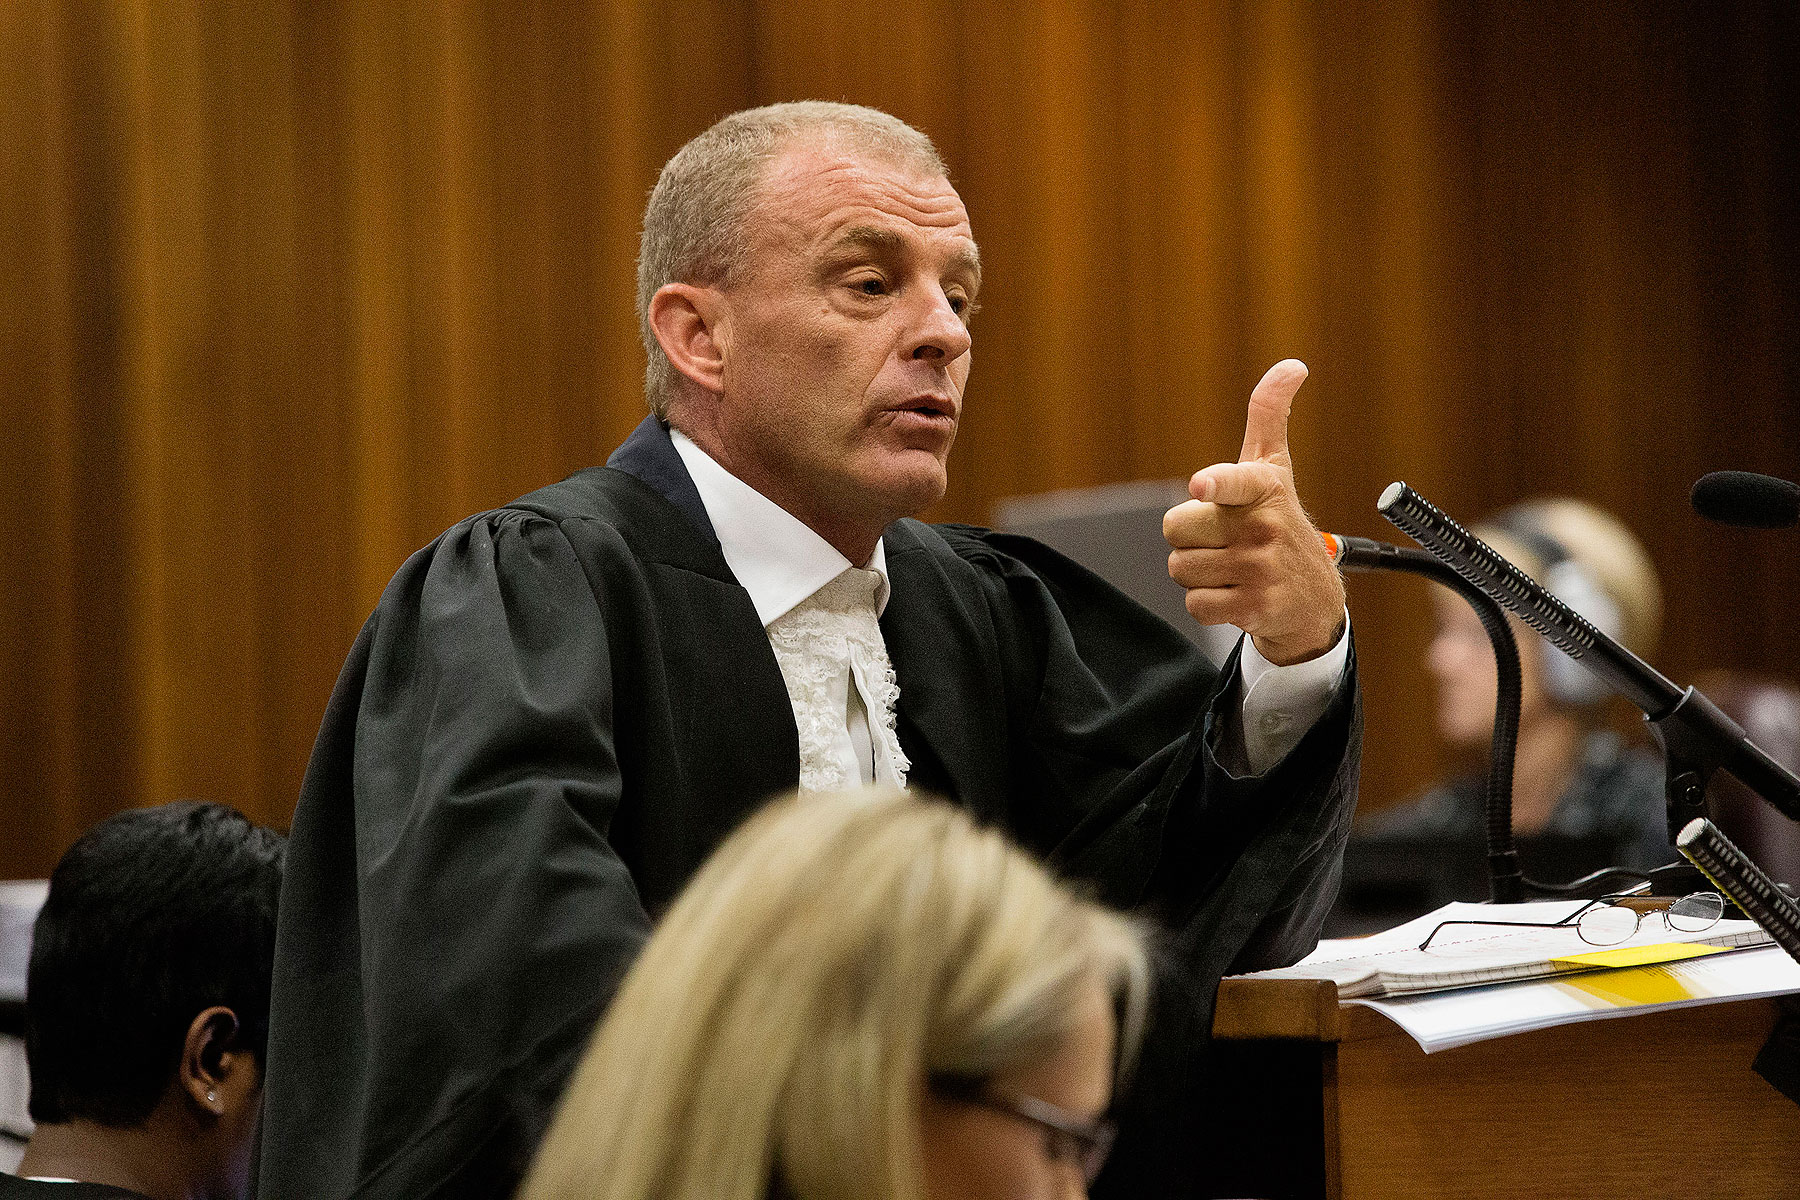 State prosecutor Gerrie Nel gestures as he cross examines Oscar Pistorius during his ongoing murder trial in Pretoria, April 10, 2014